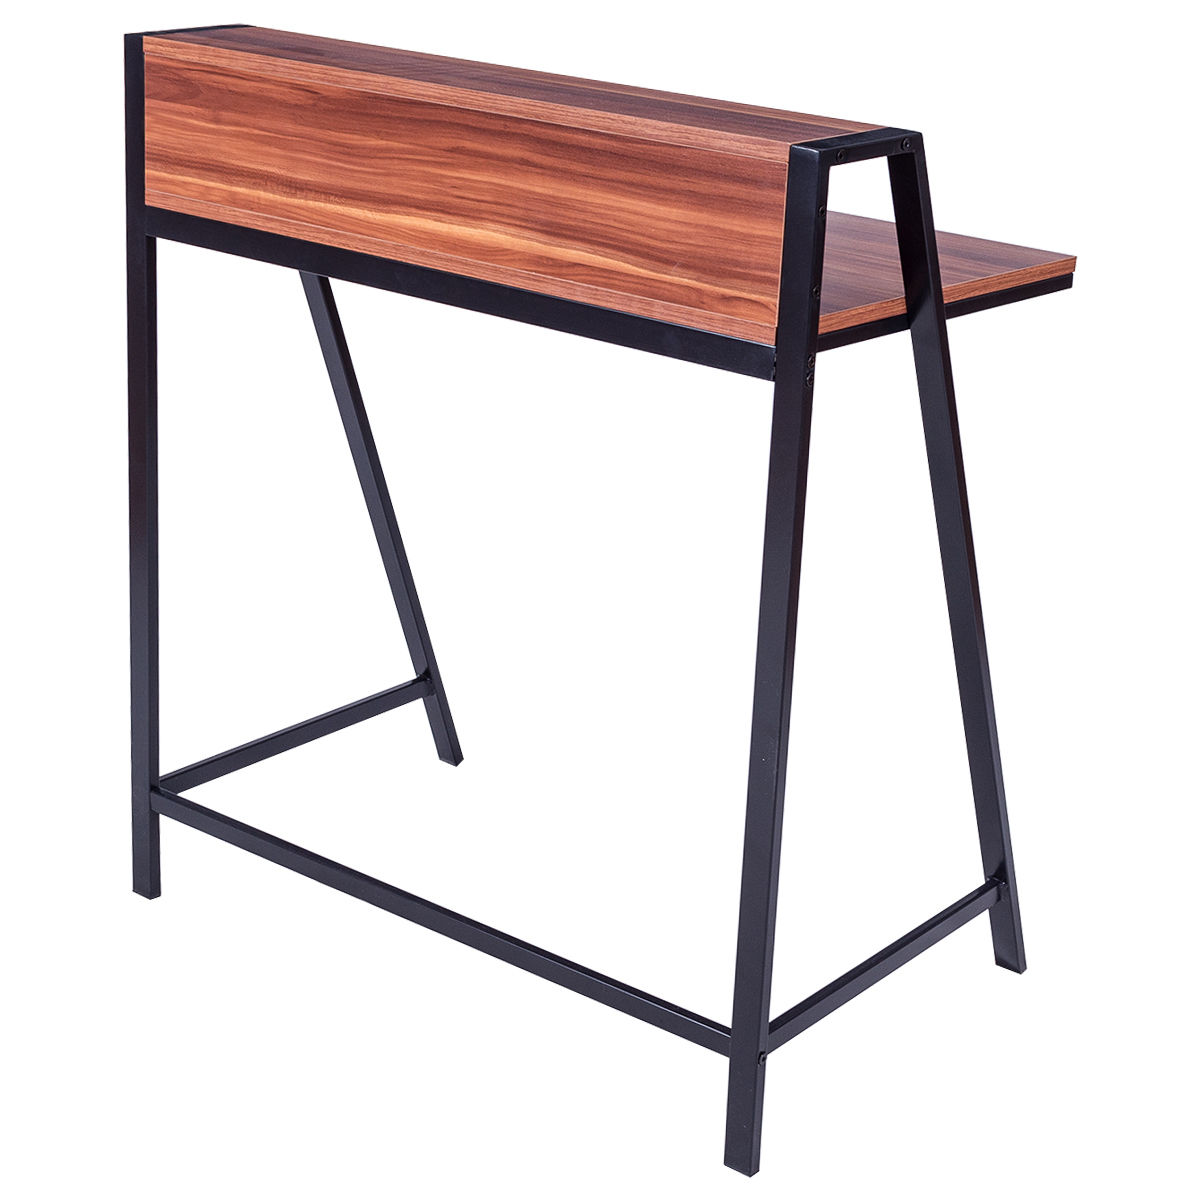 Giantex 2 Tier Computer Desk Modern PC Laptop Table Study Writing Wooden  Furniture Home Office Workstation HW55395 In Laptop Desks From Furniture On  ...